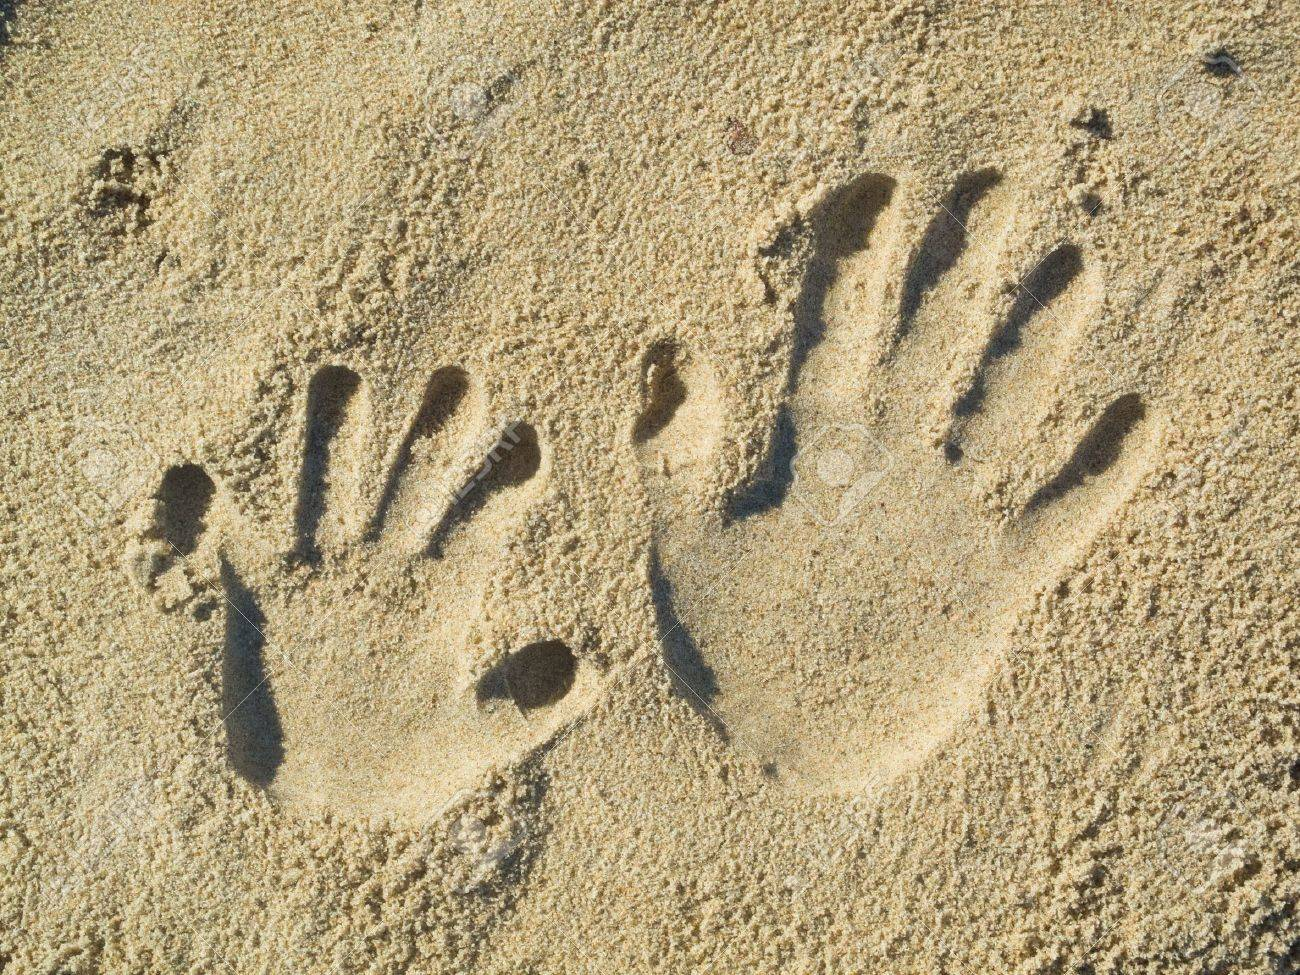 Optical illusion - Handprints of a child and an adult in the sand Standard-Bild - 13284992